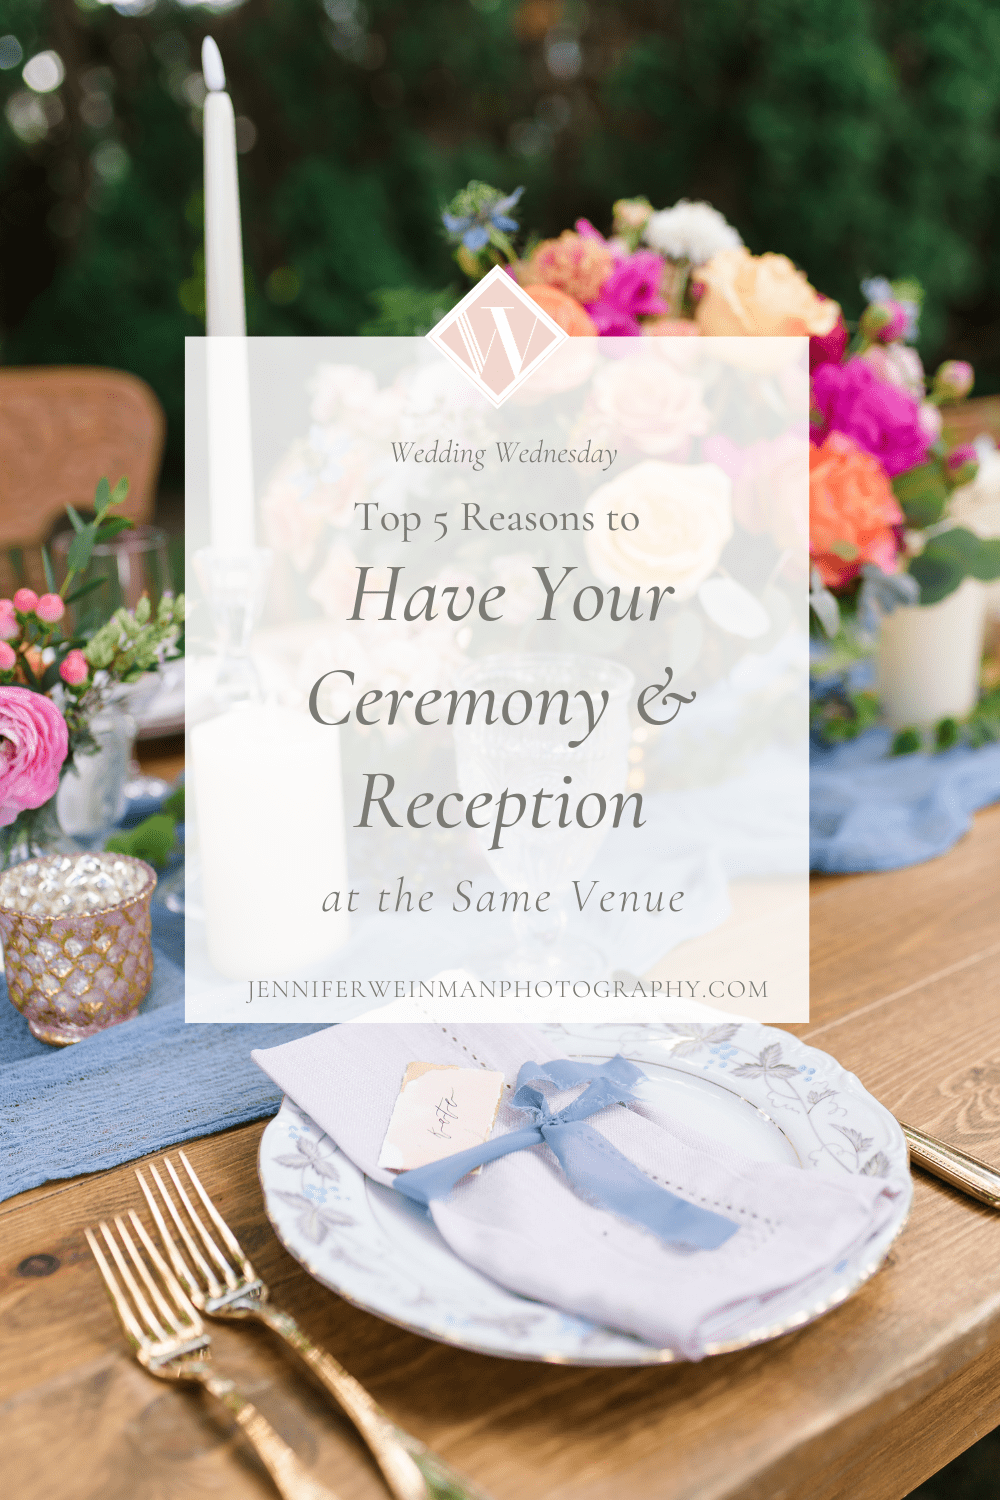 Top 5 Reasons to Have Your Ceremony & Reception at the Same Venue